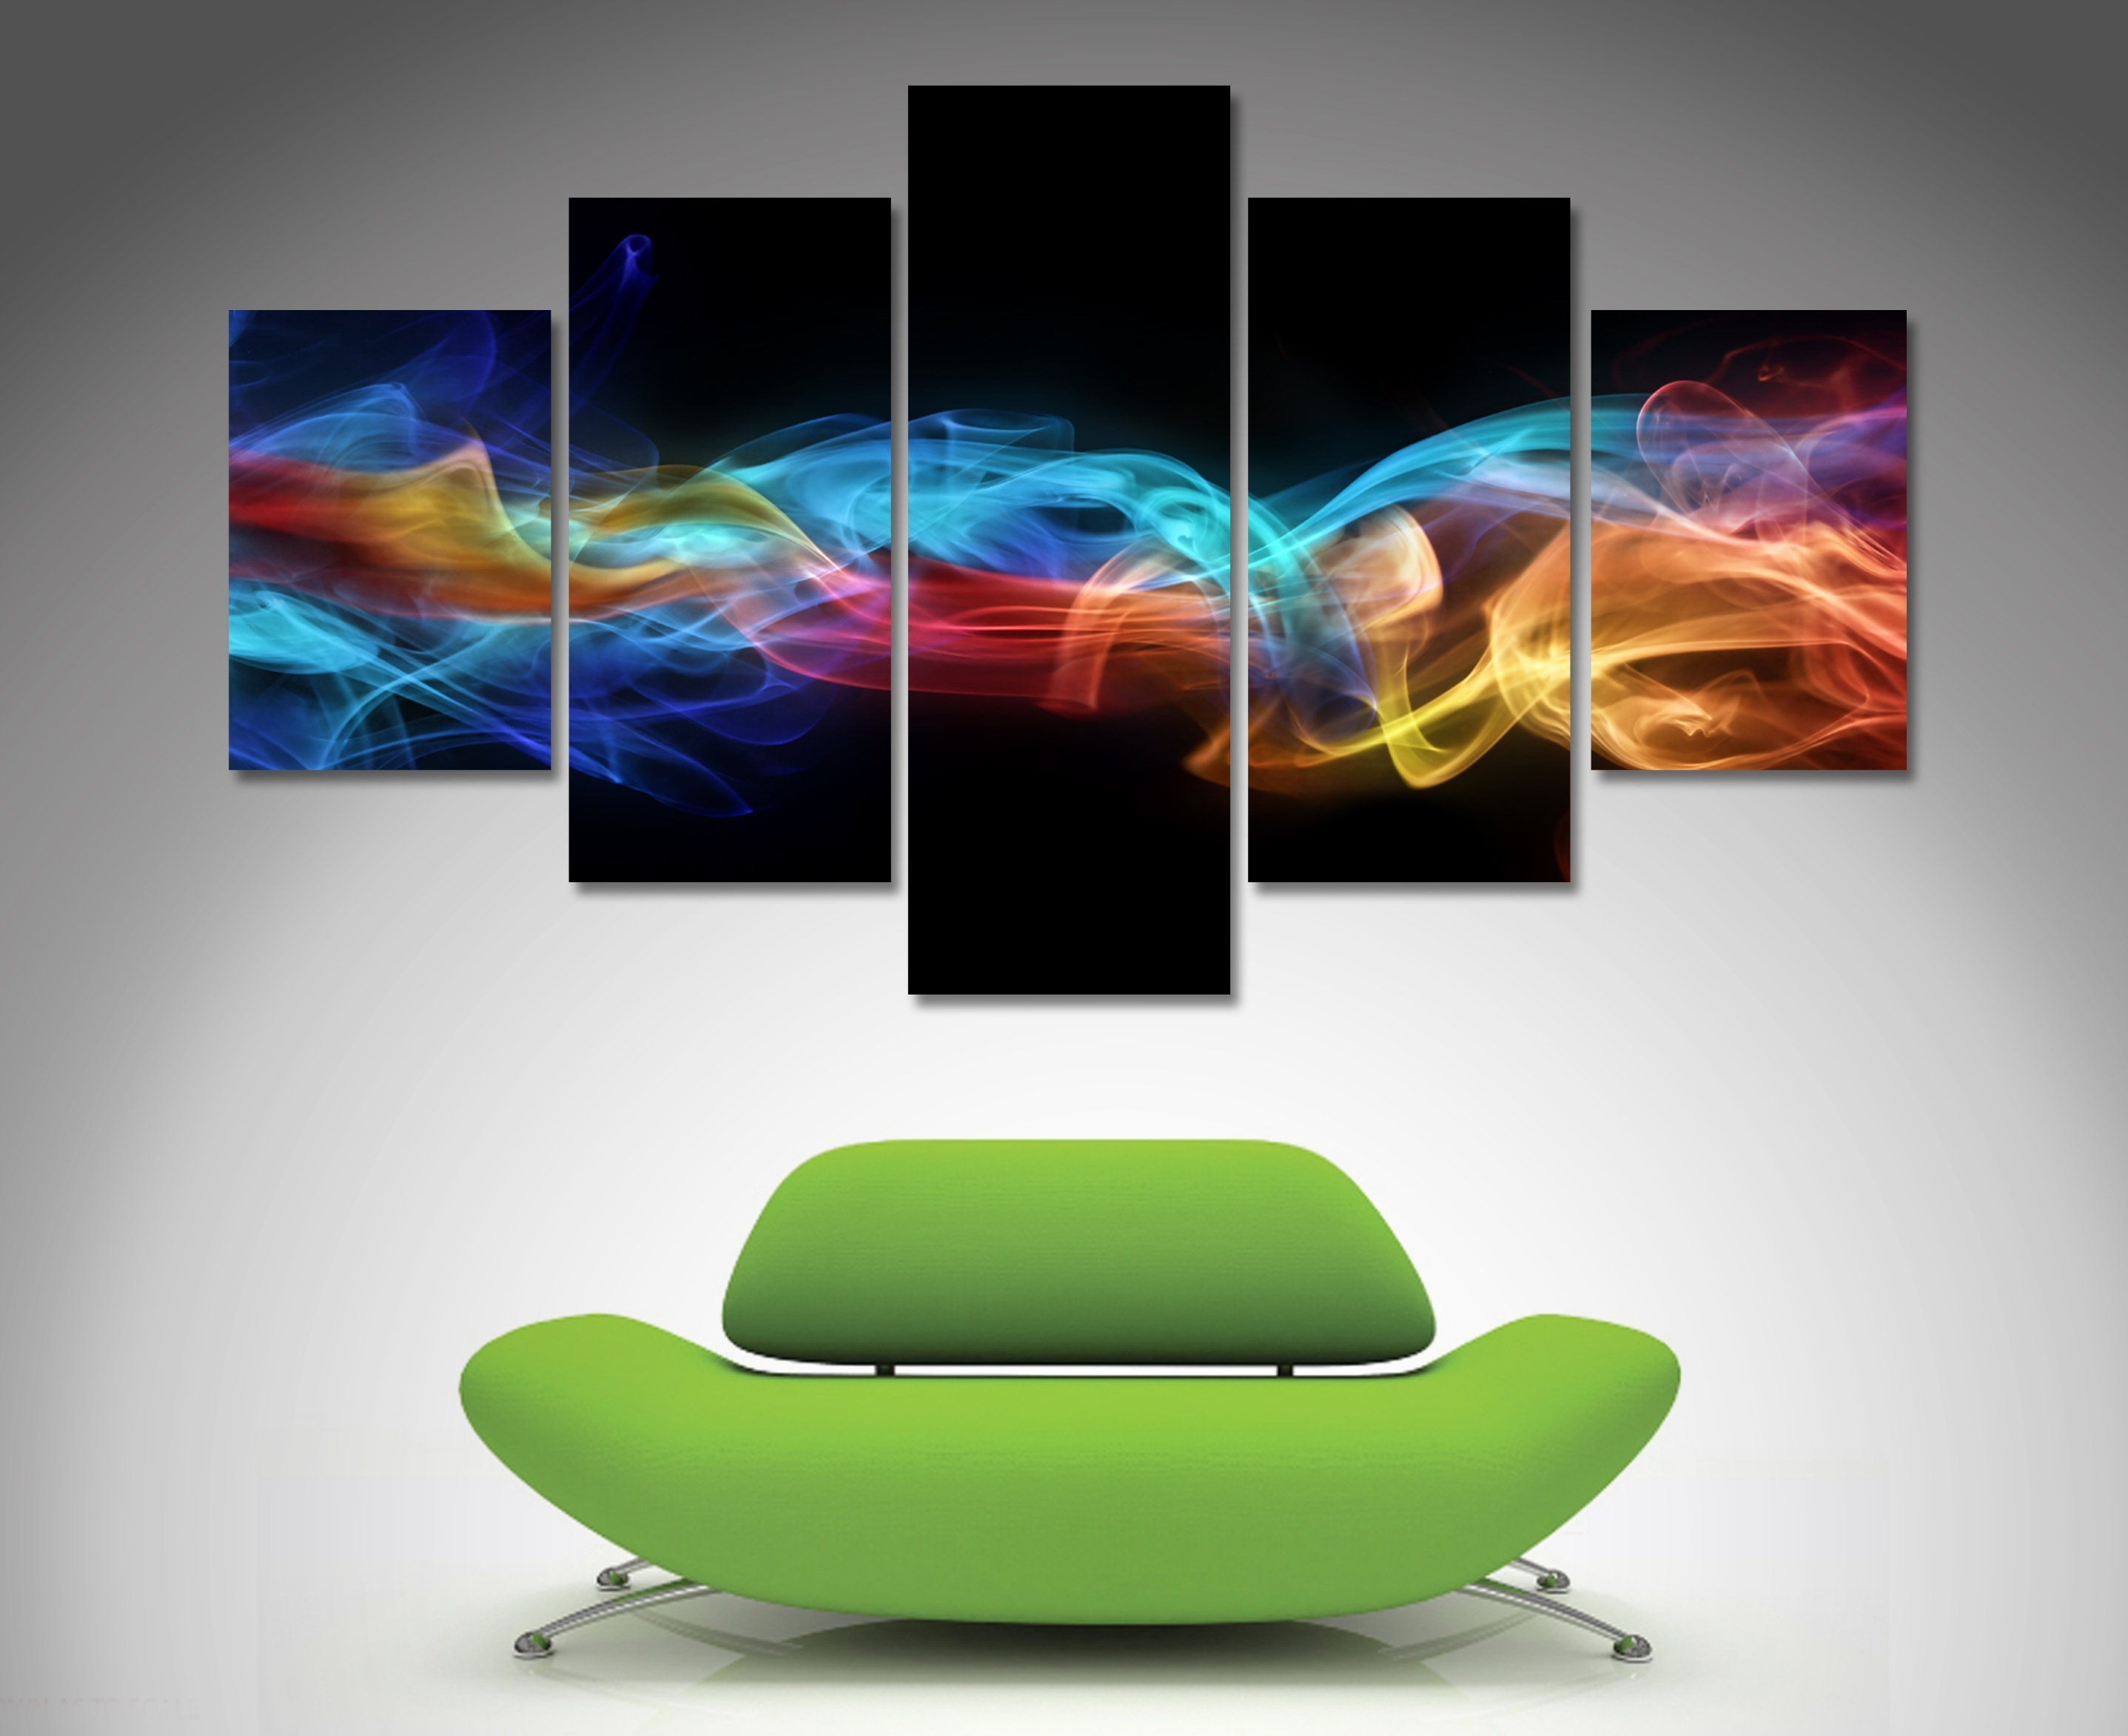 Fire And Ice 5 Panel Wall Art | Canvas Printing Australia With Regard To Most Recent Canvas Wall Art (View 10 of 15)